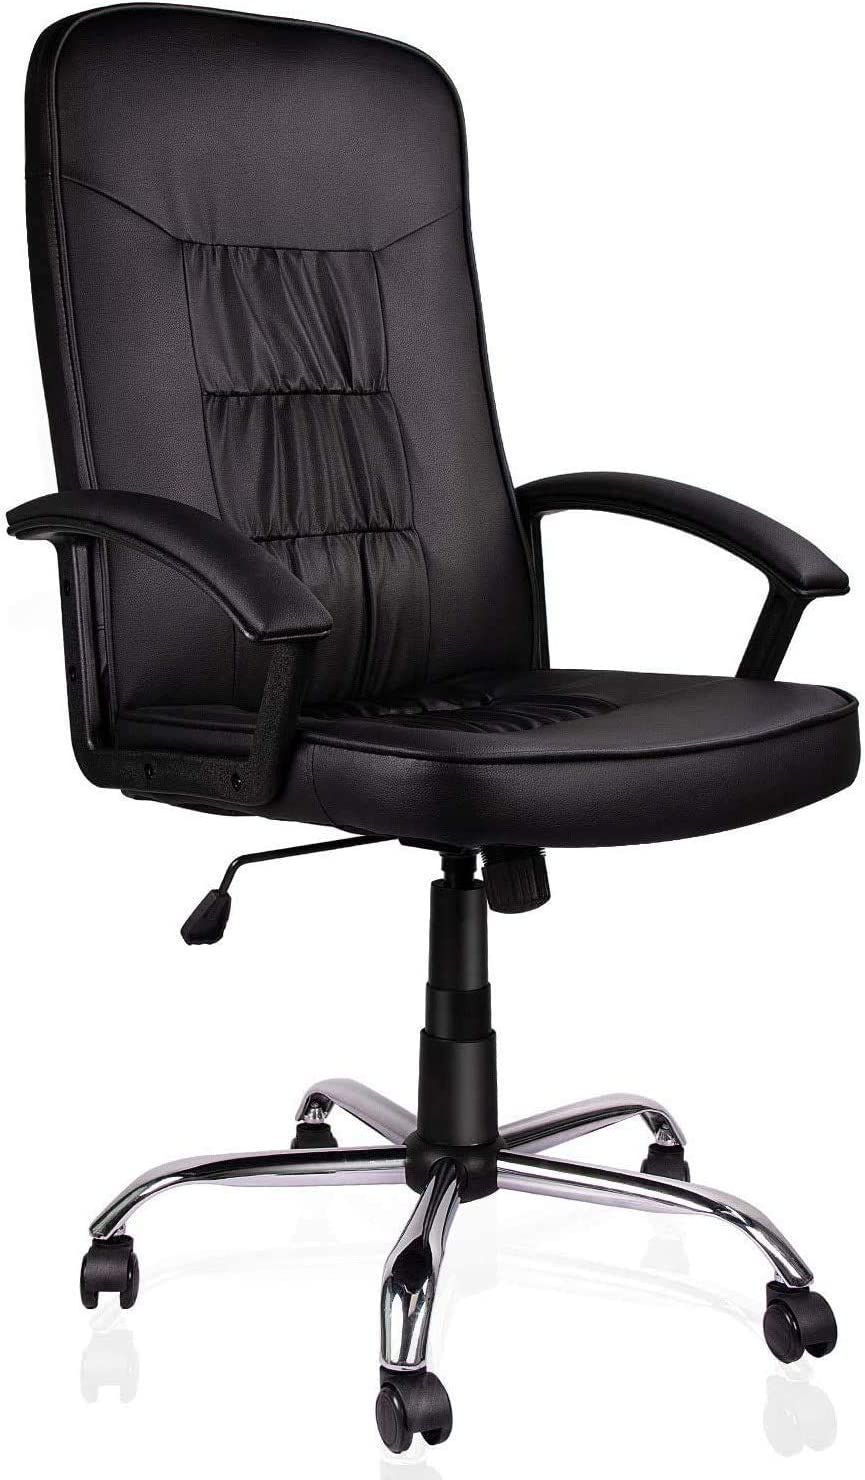 ORVEAY Ergonomic Office Chair